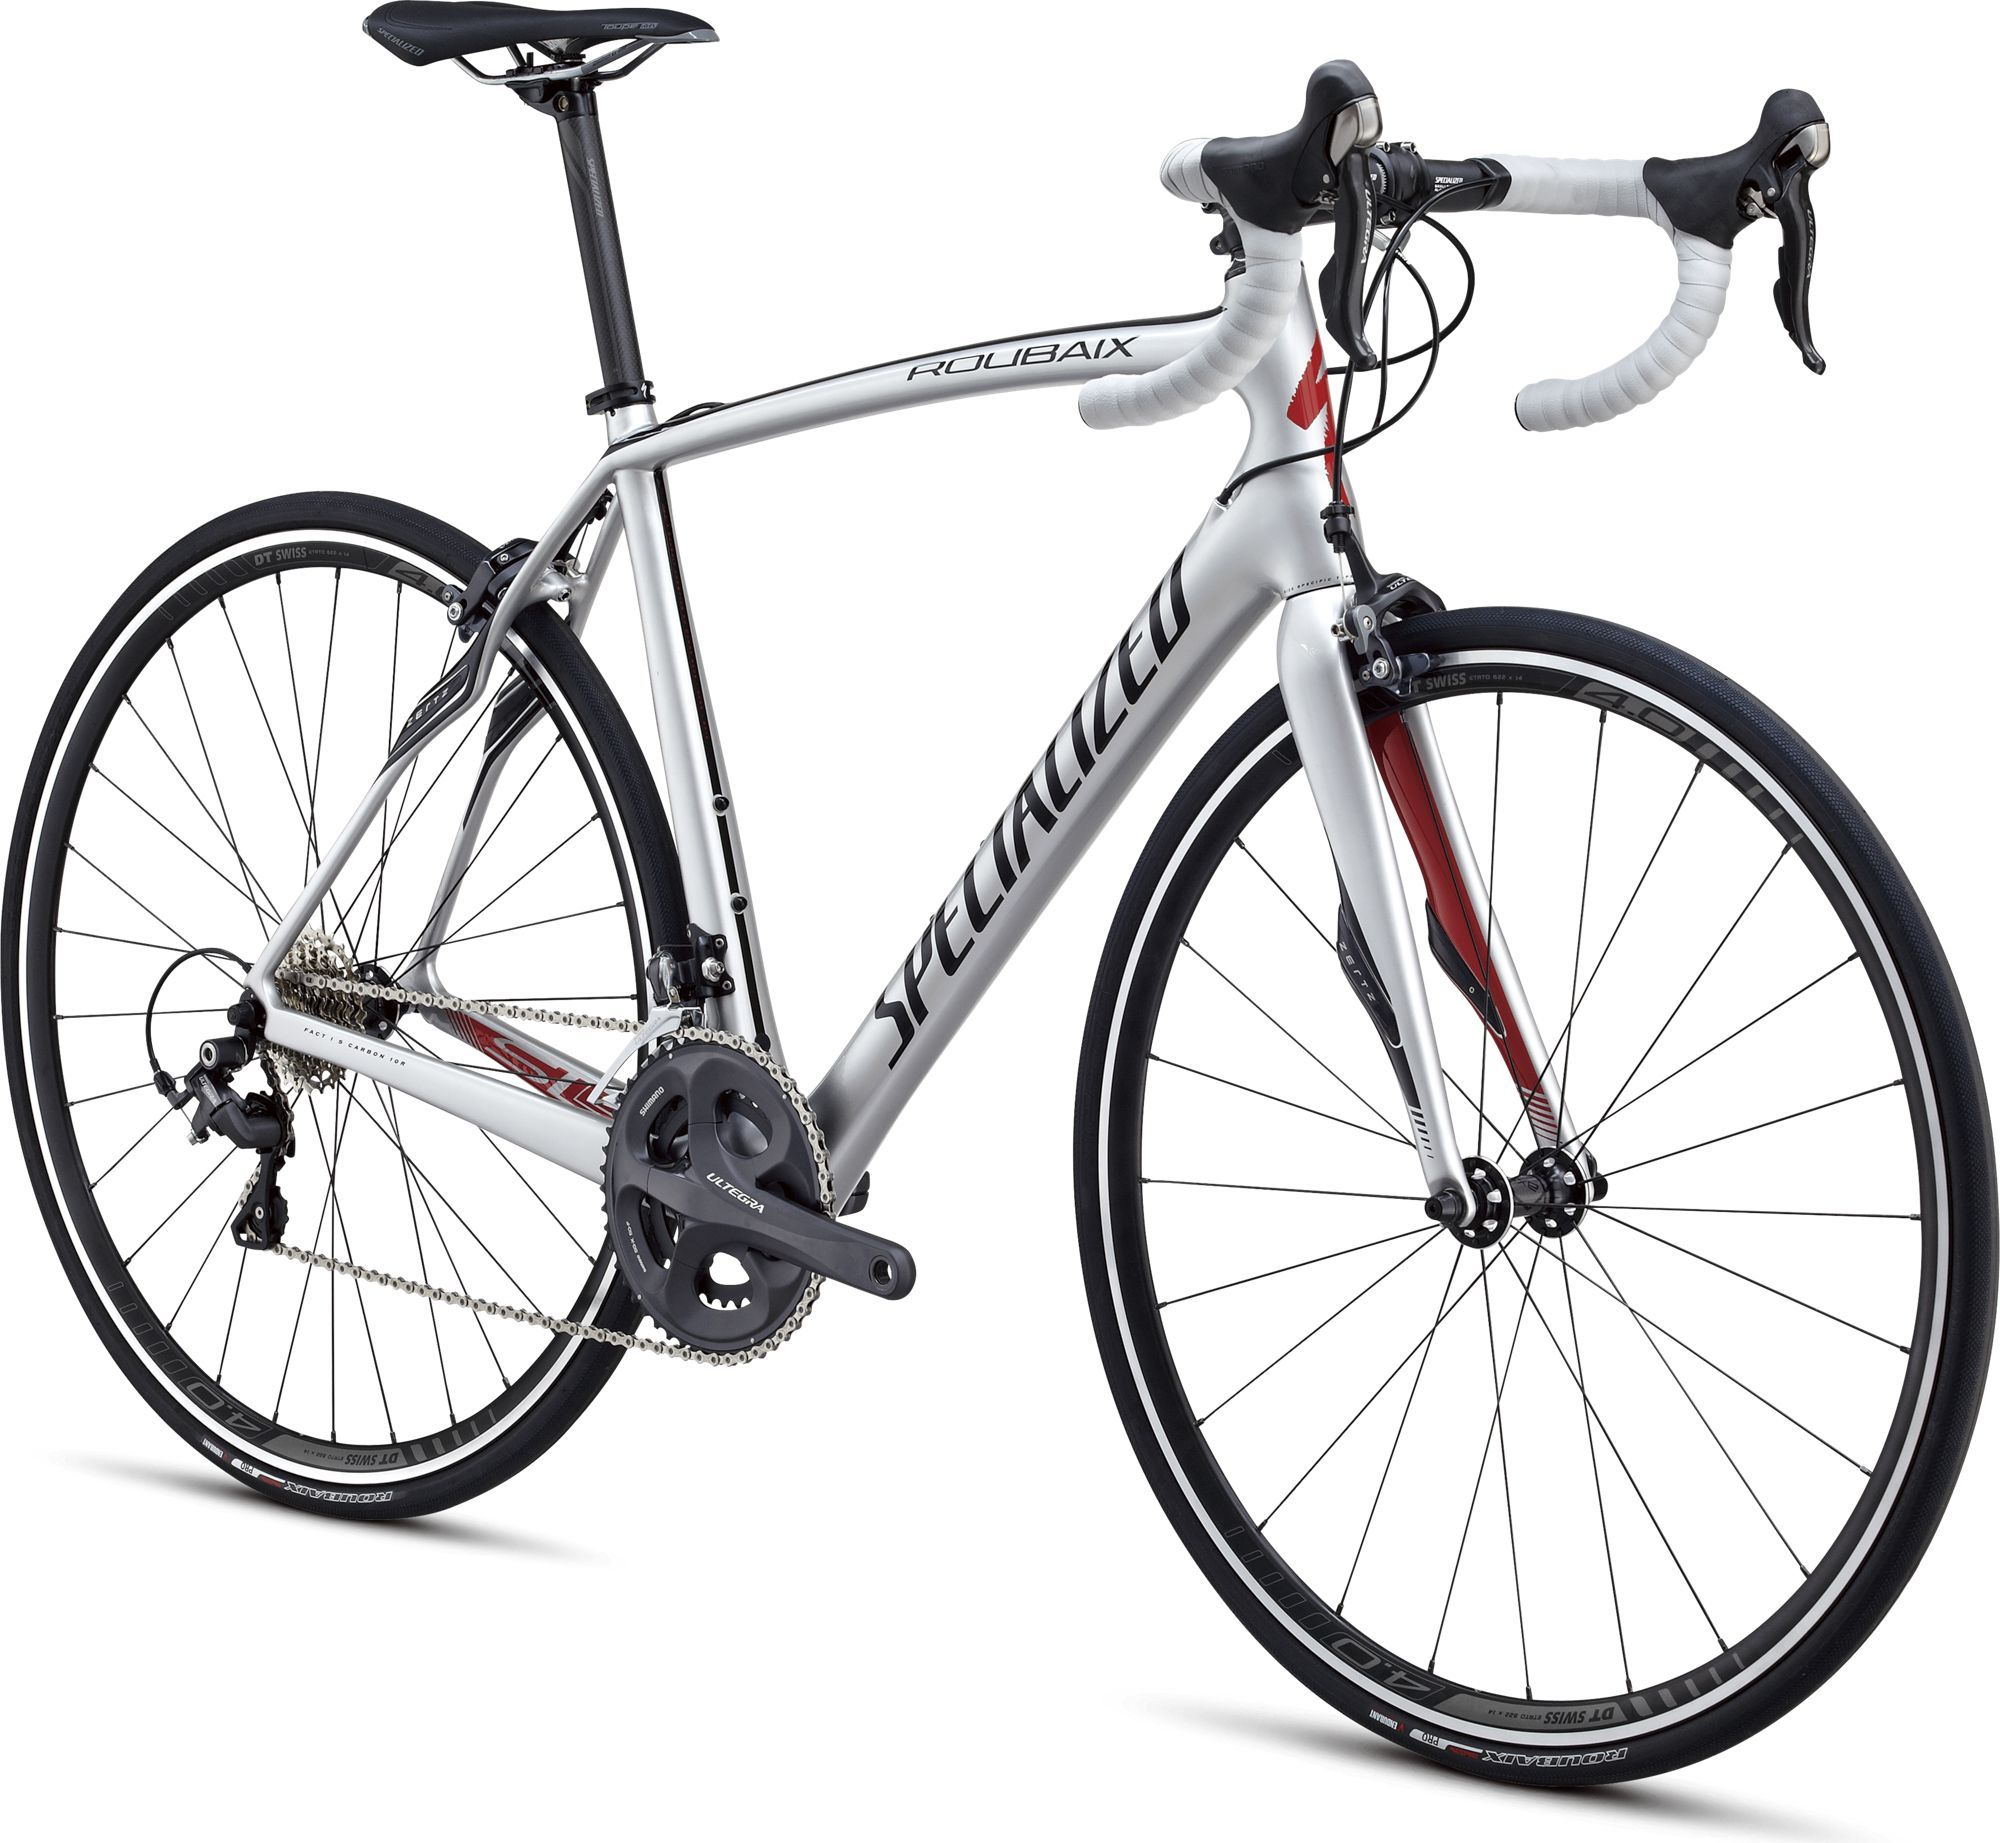 Specialized Roubaix Expert SL4 2013 Review